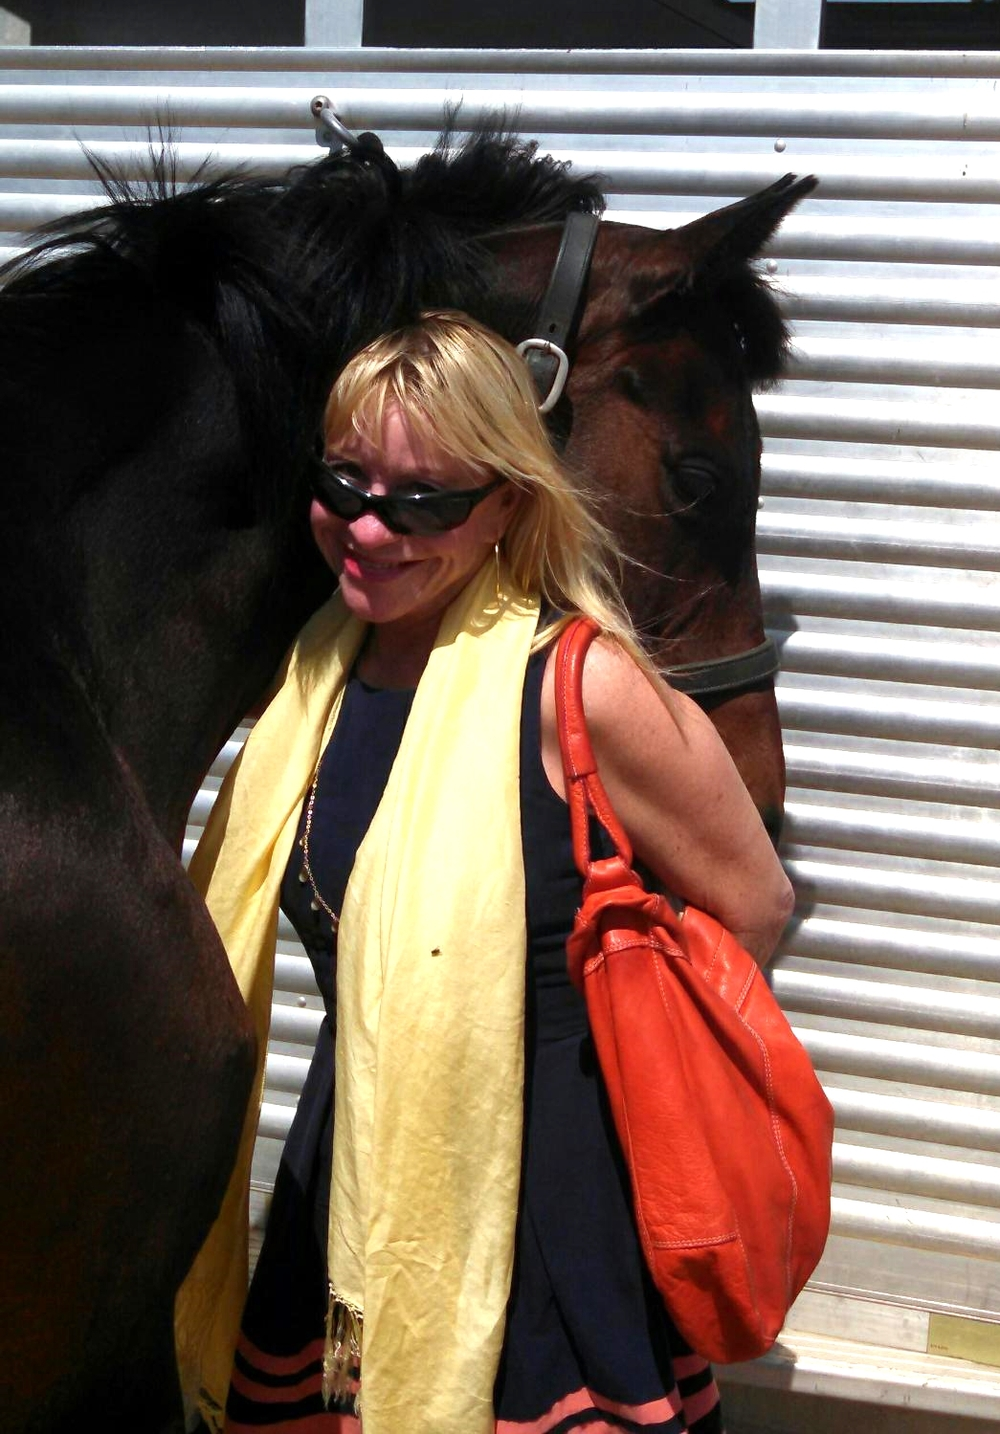 With my horse-loving friend Nancy